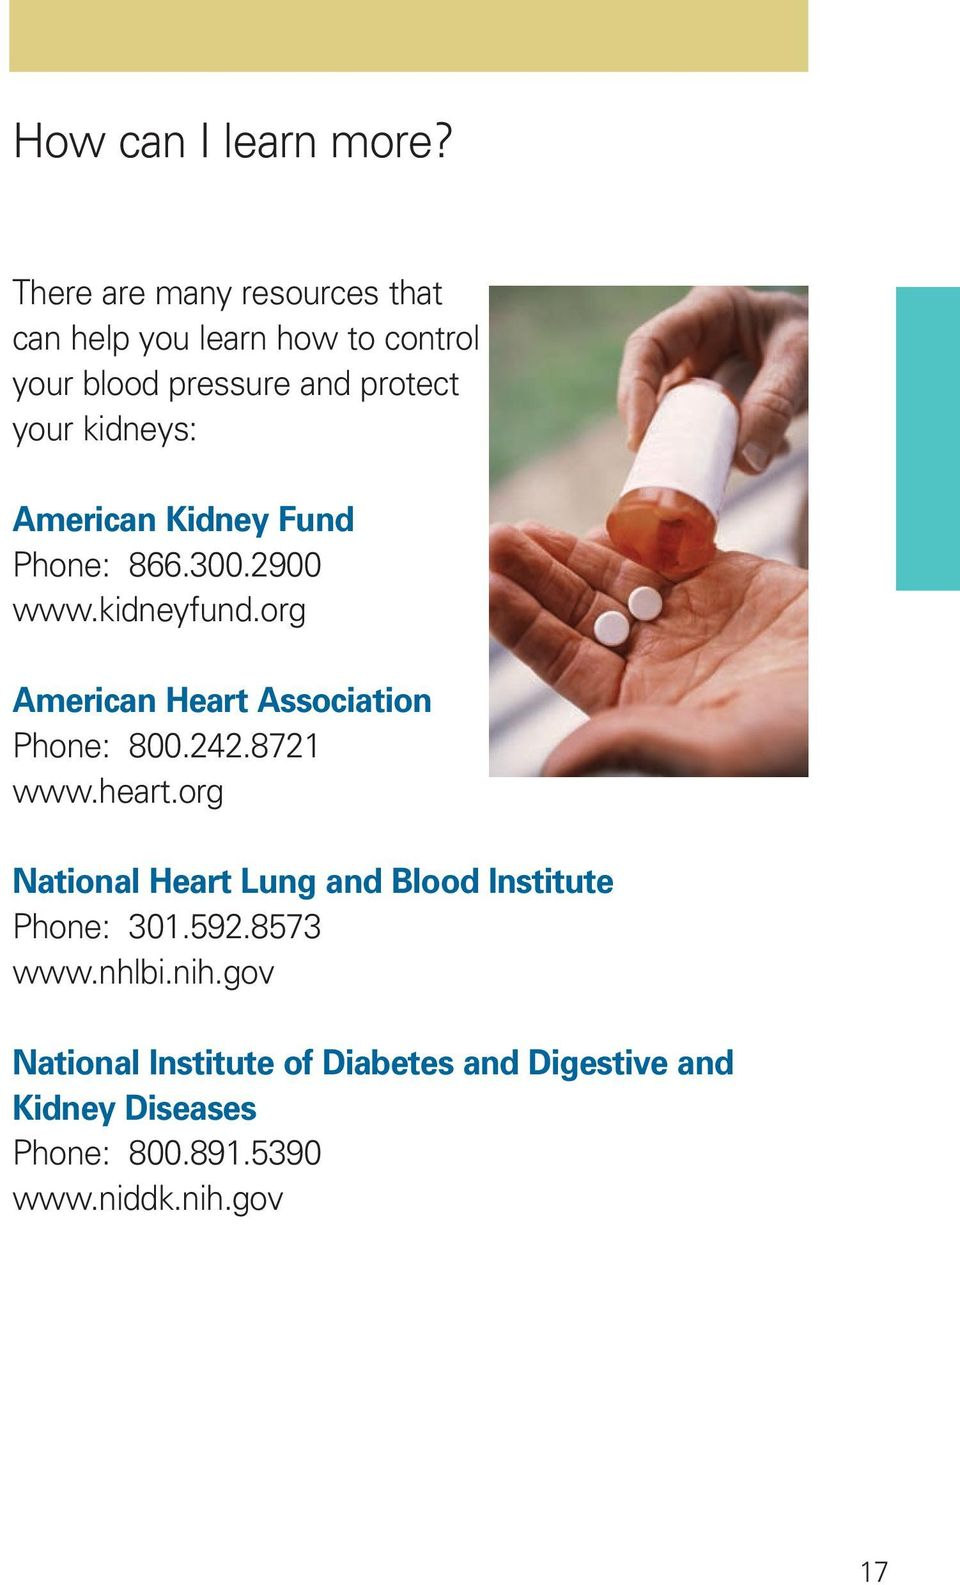 kidneys: American Kidney Fund Phone: 866.300.2900 www.kidneyfund.org American Heart Association Phone: 800.